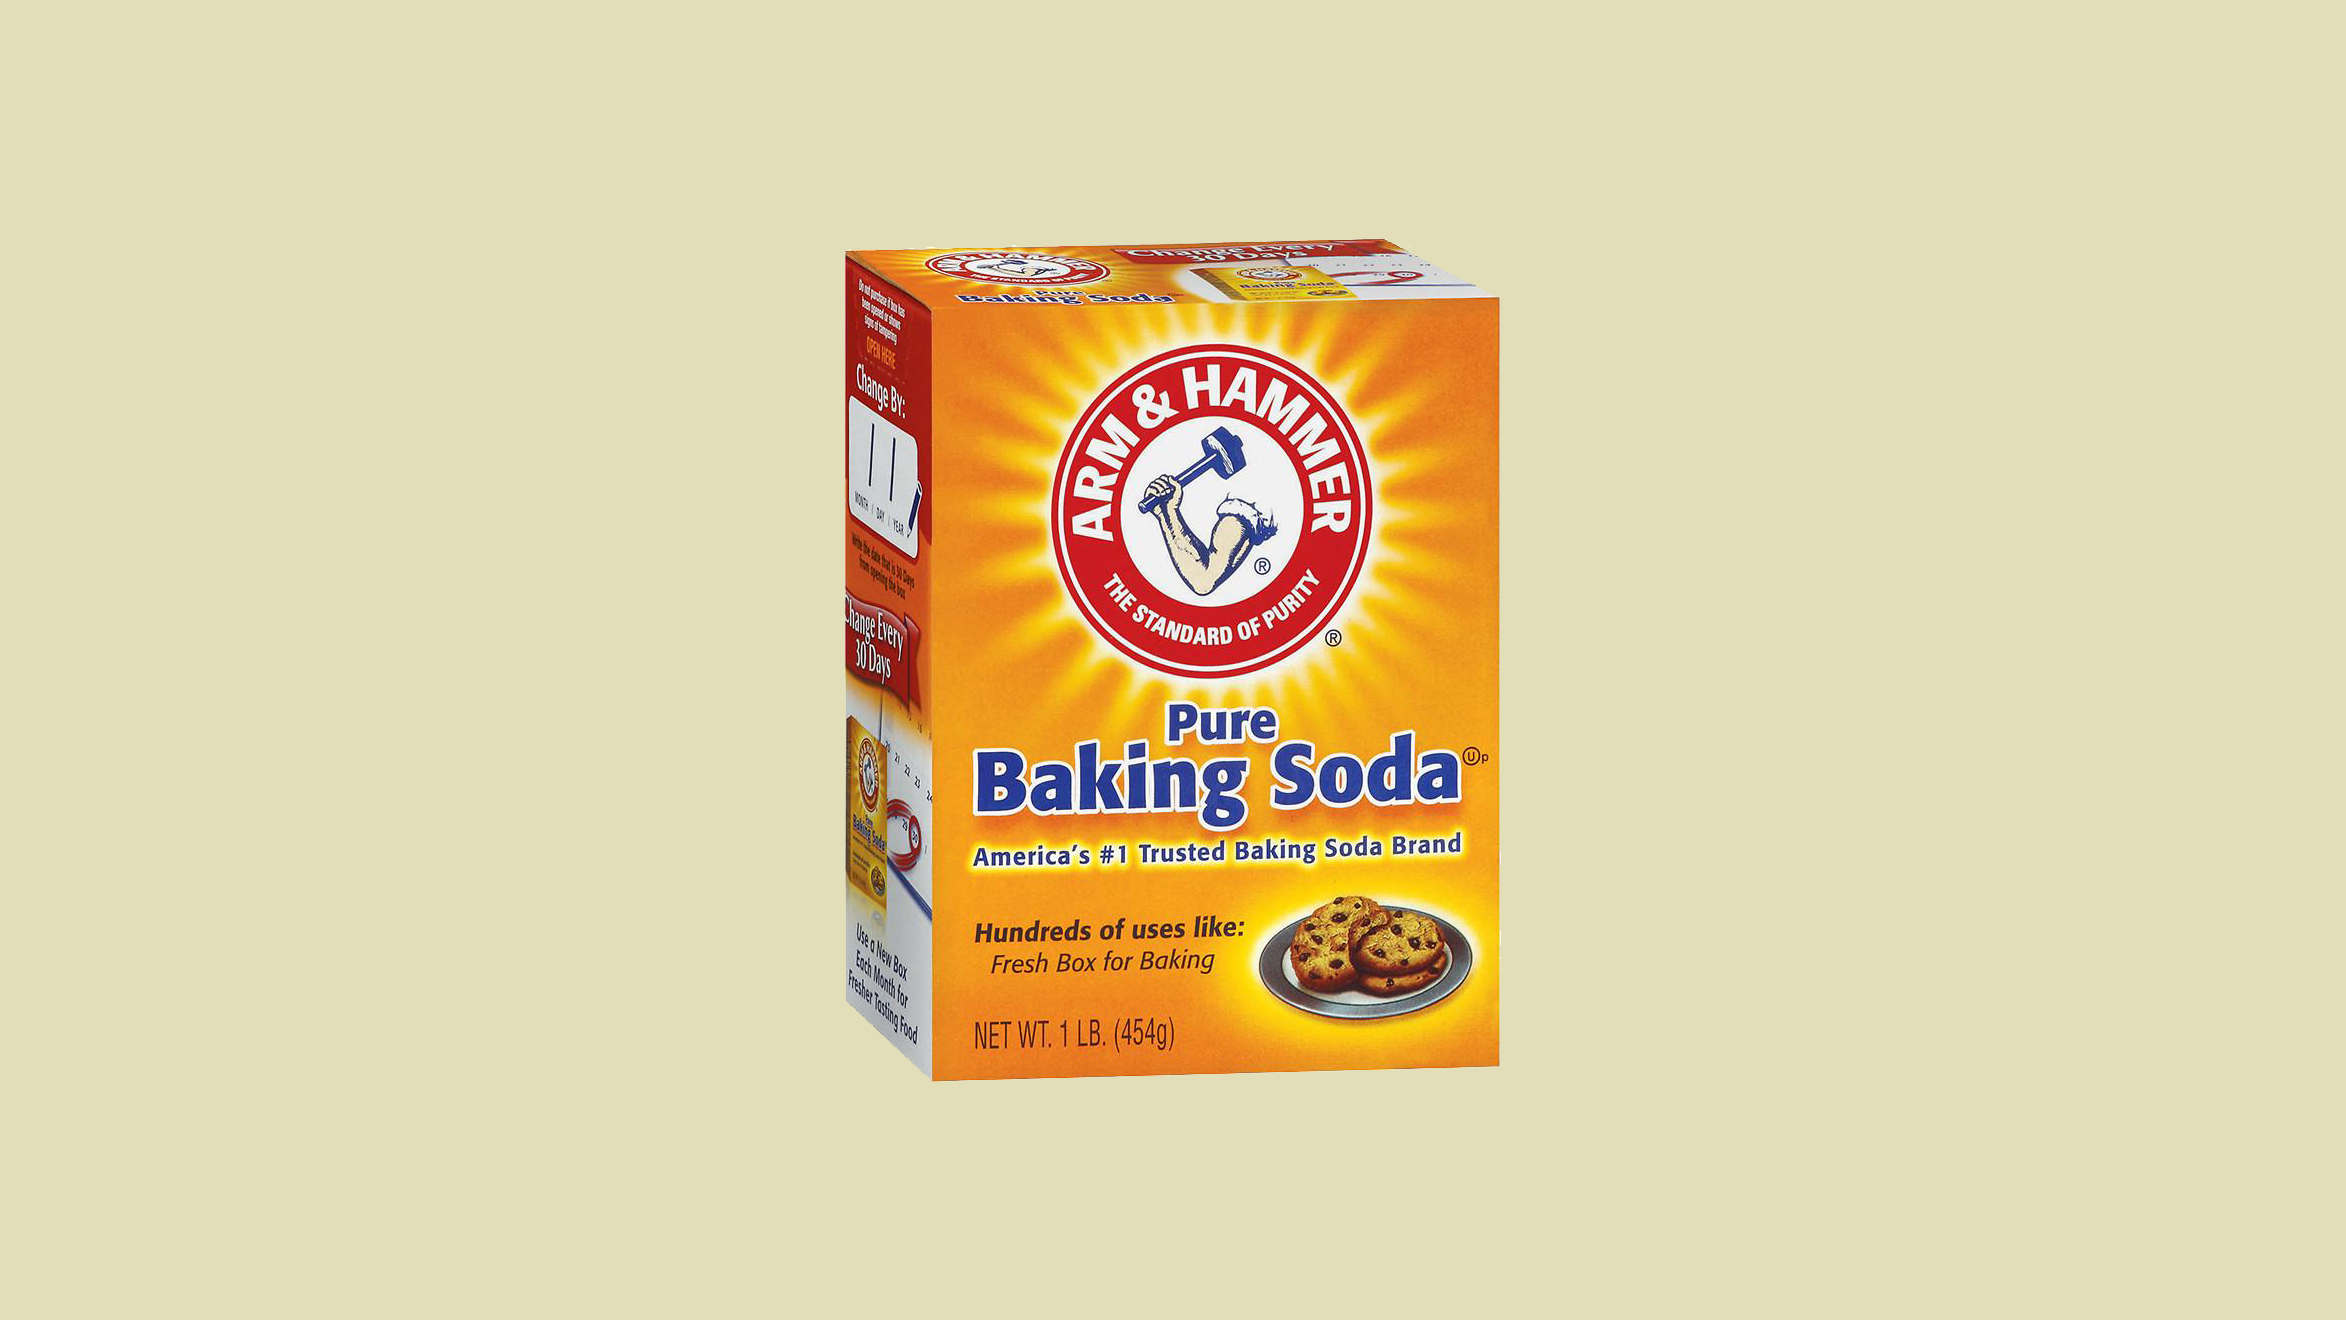 arm and hammer box of baking soda